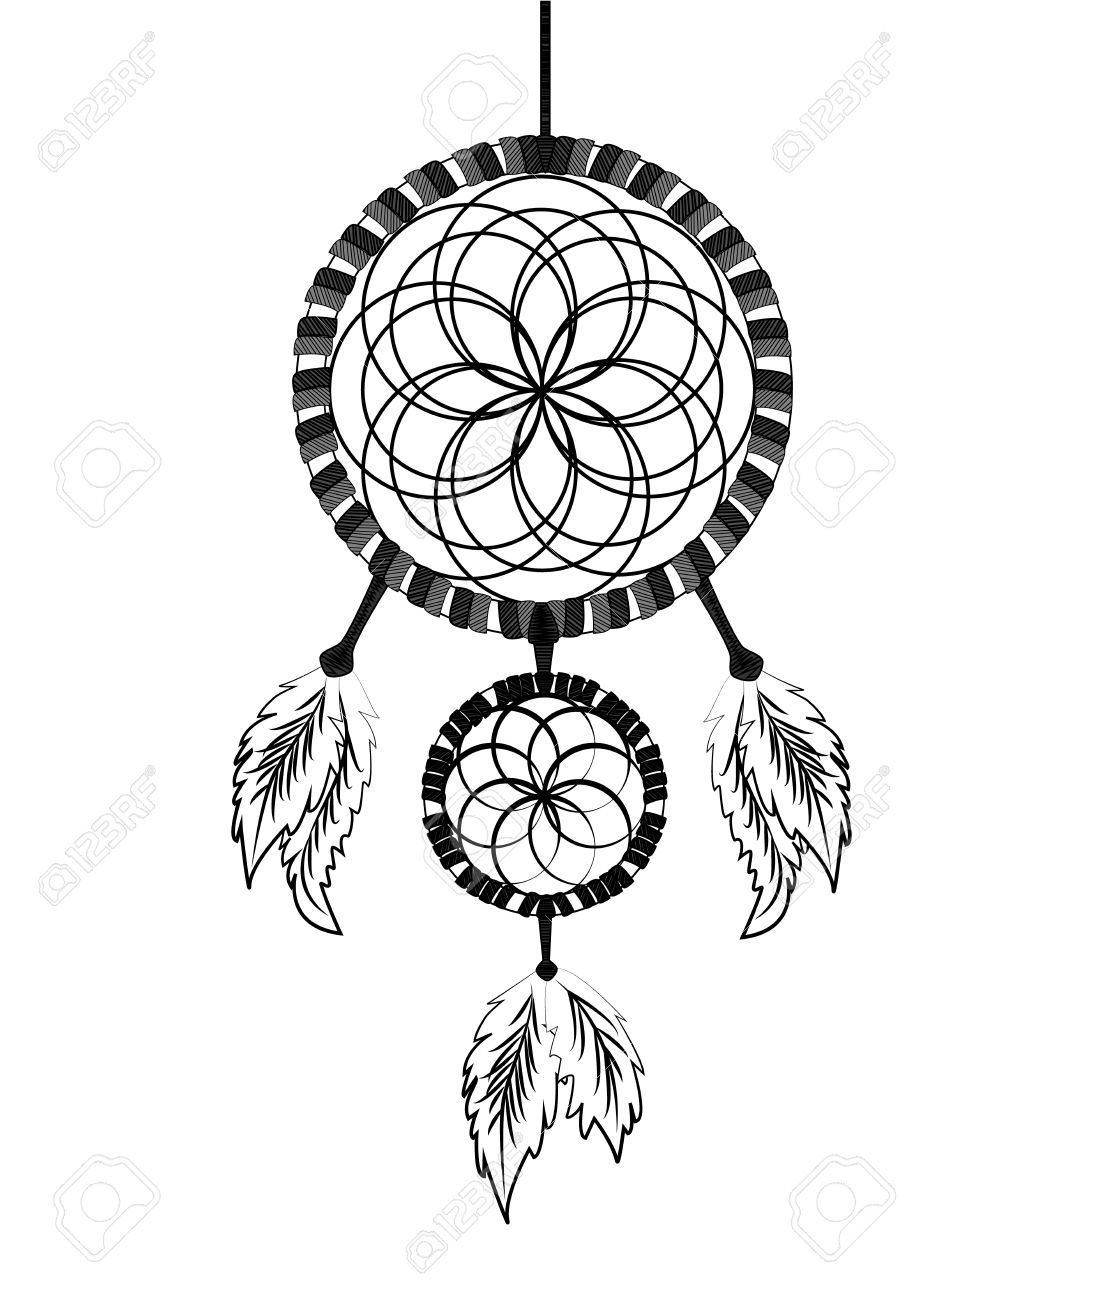 dream catcher ink illustration vector royalty free cliparts vectors rh 123rf com dream catcher vector dream catcher vector free